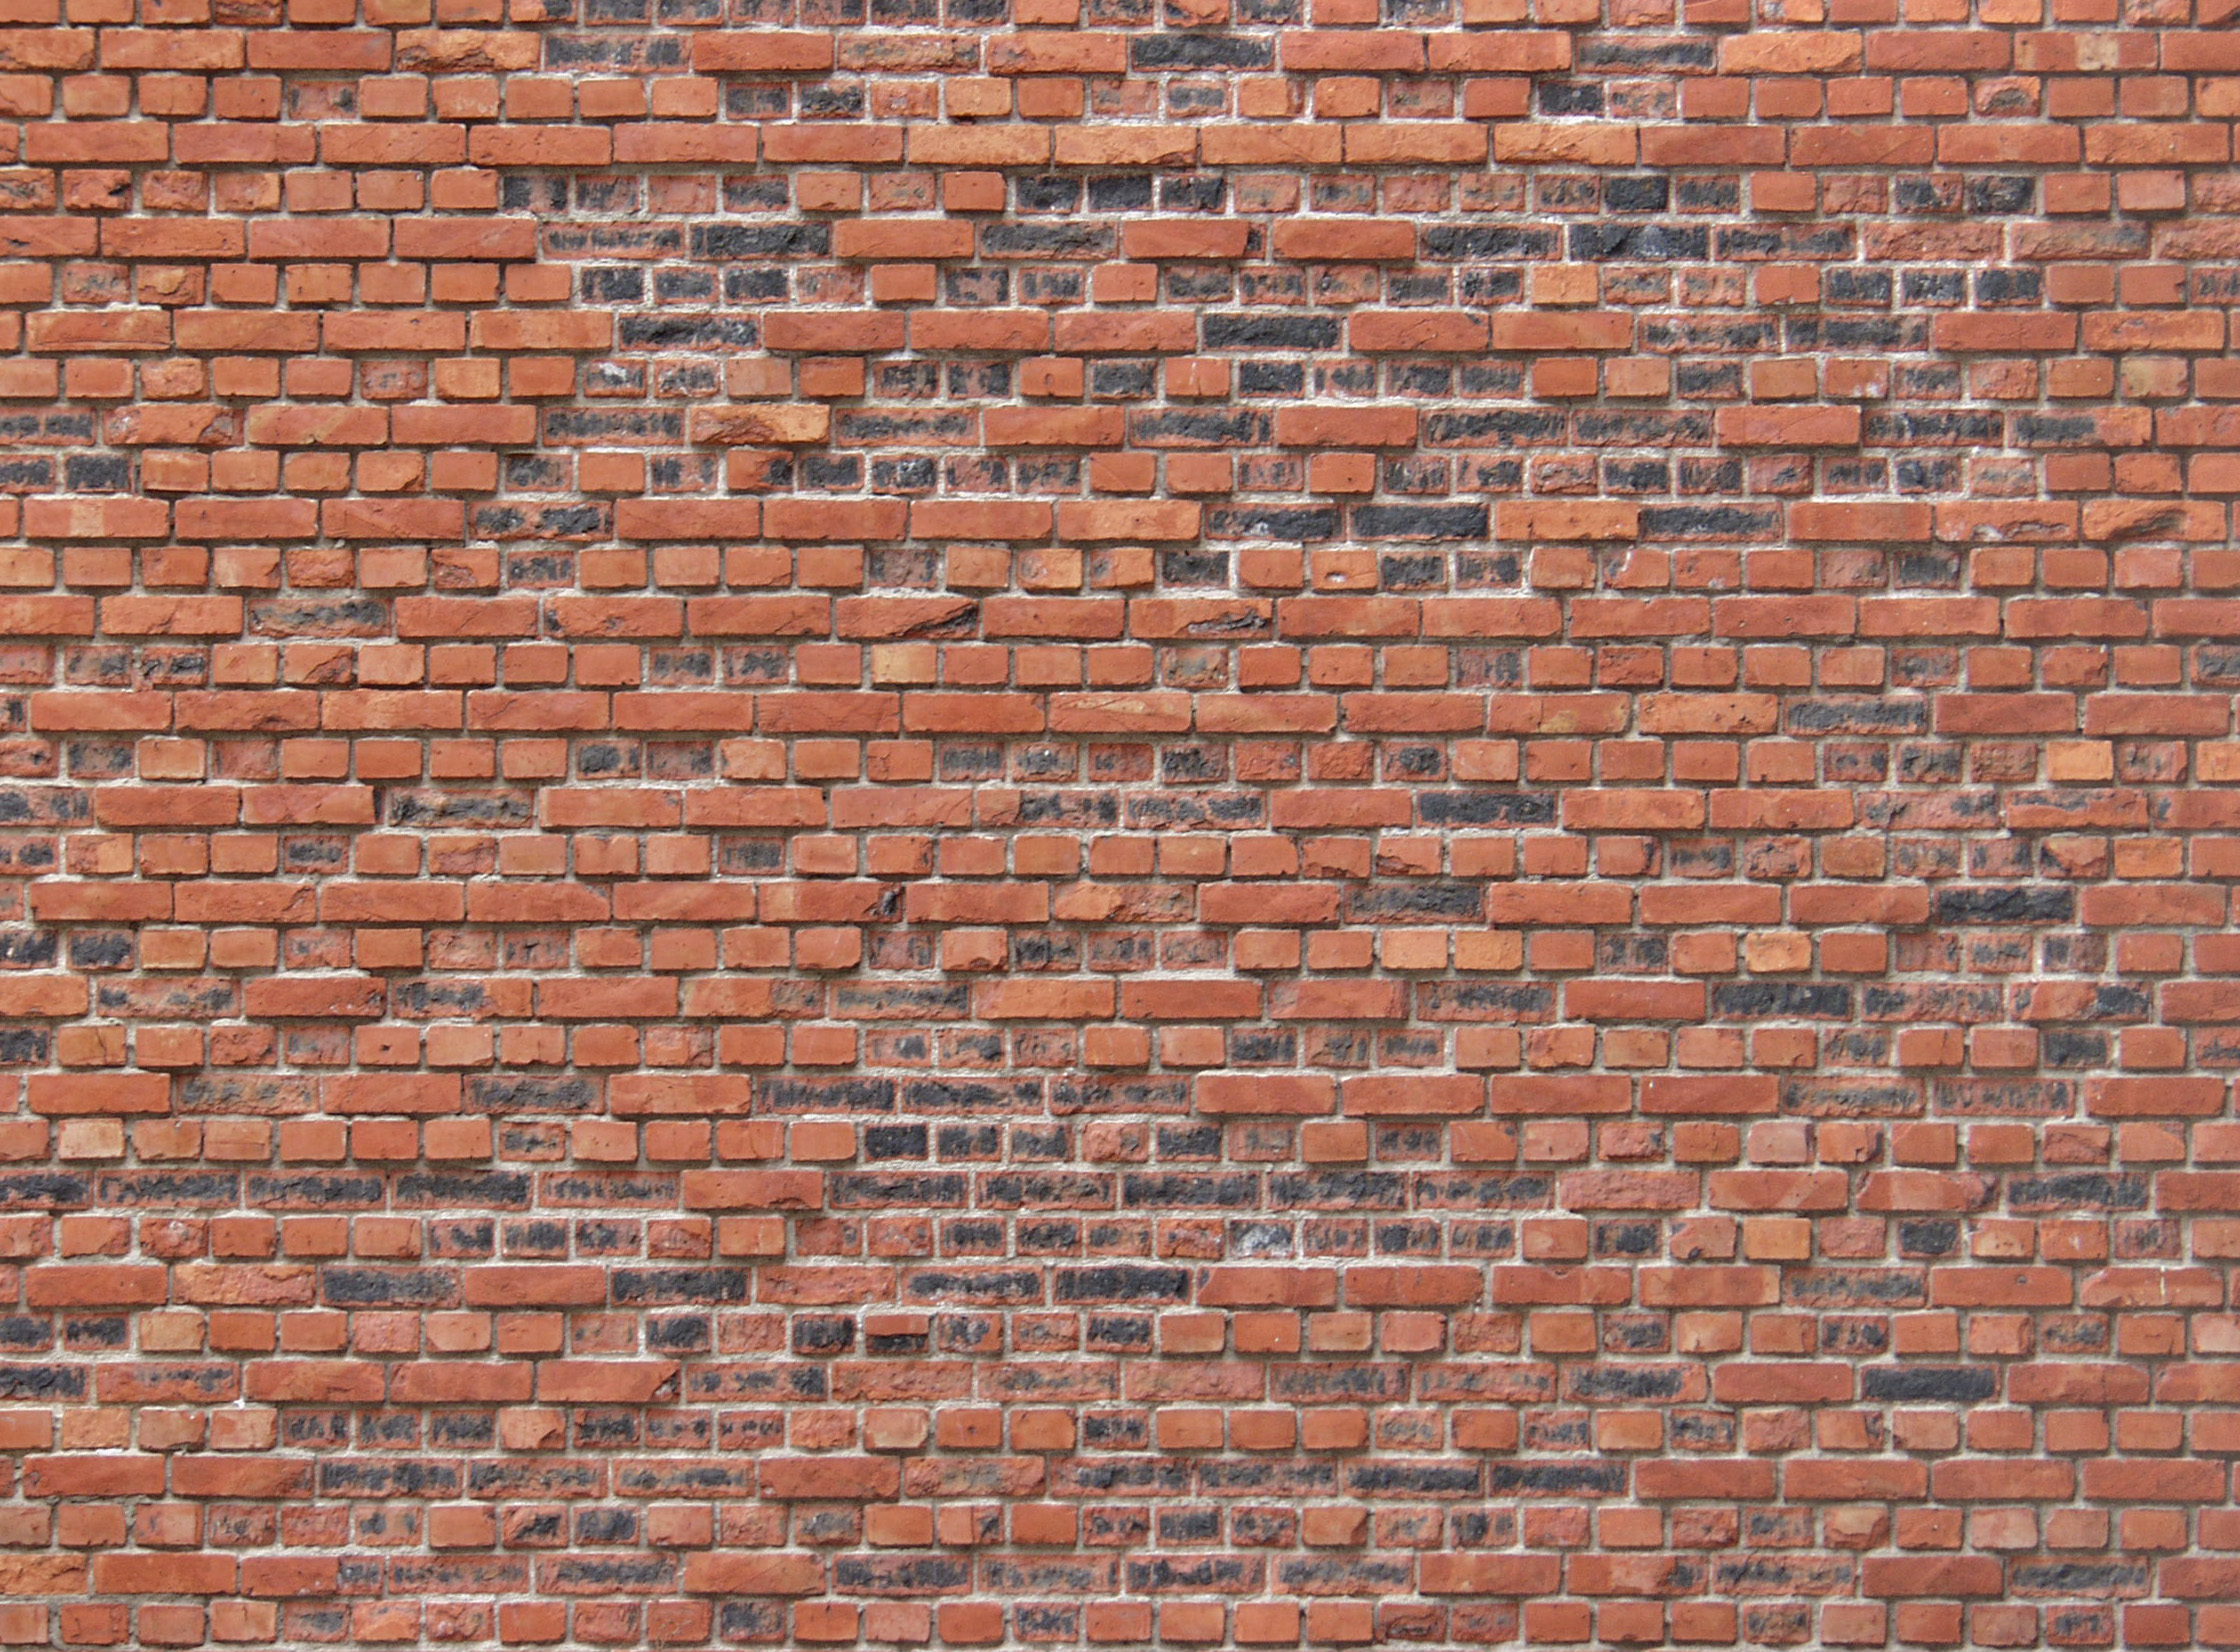 Brick wall brick wall texture brick wall bricks bricks for What to do with bricks